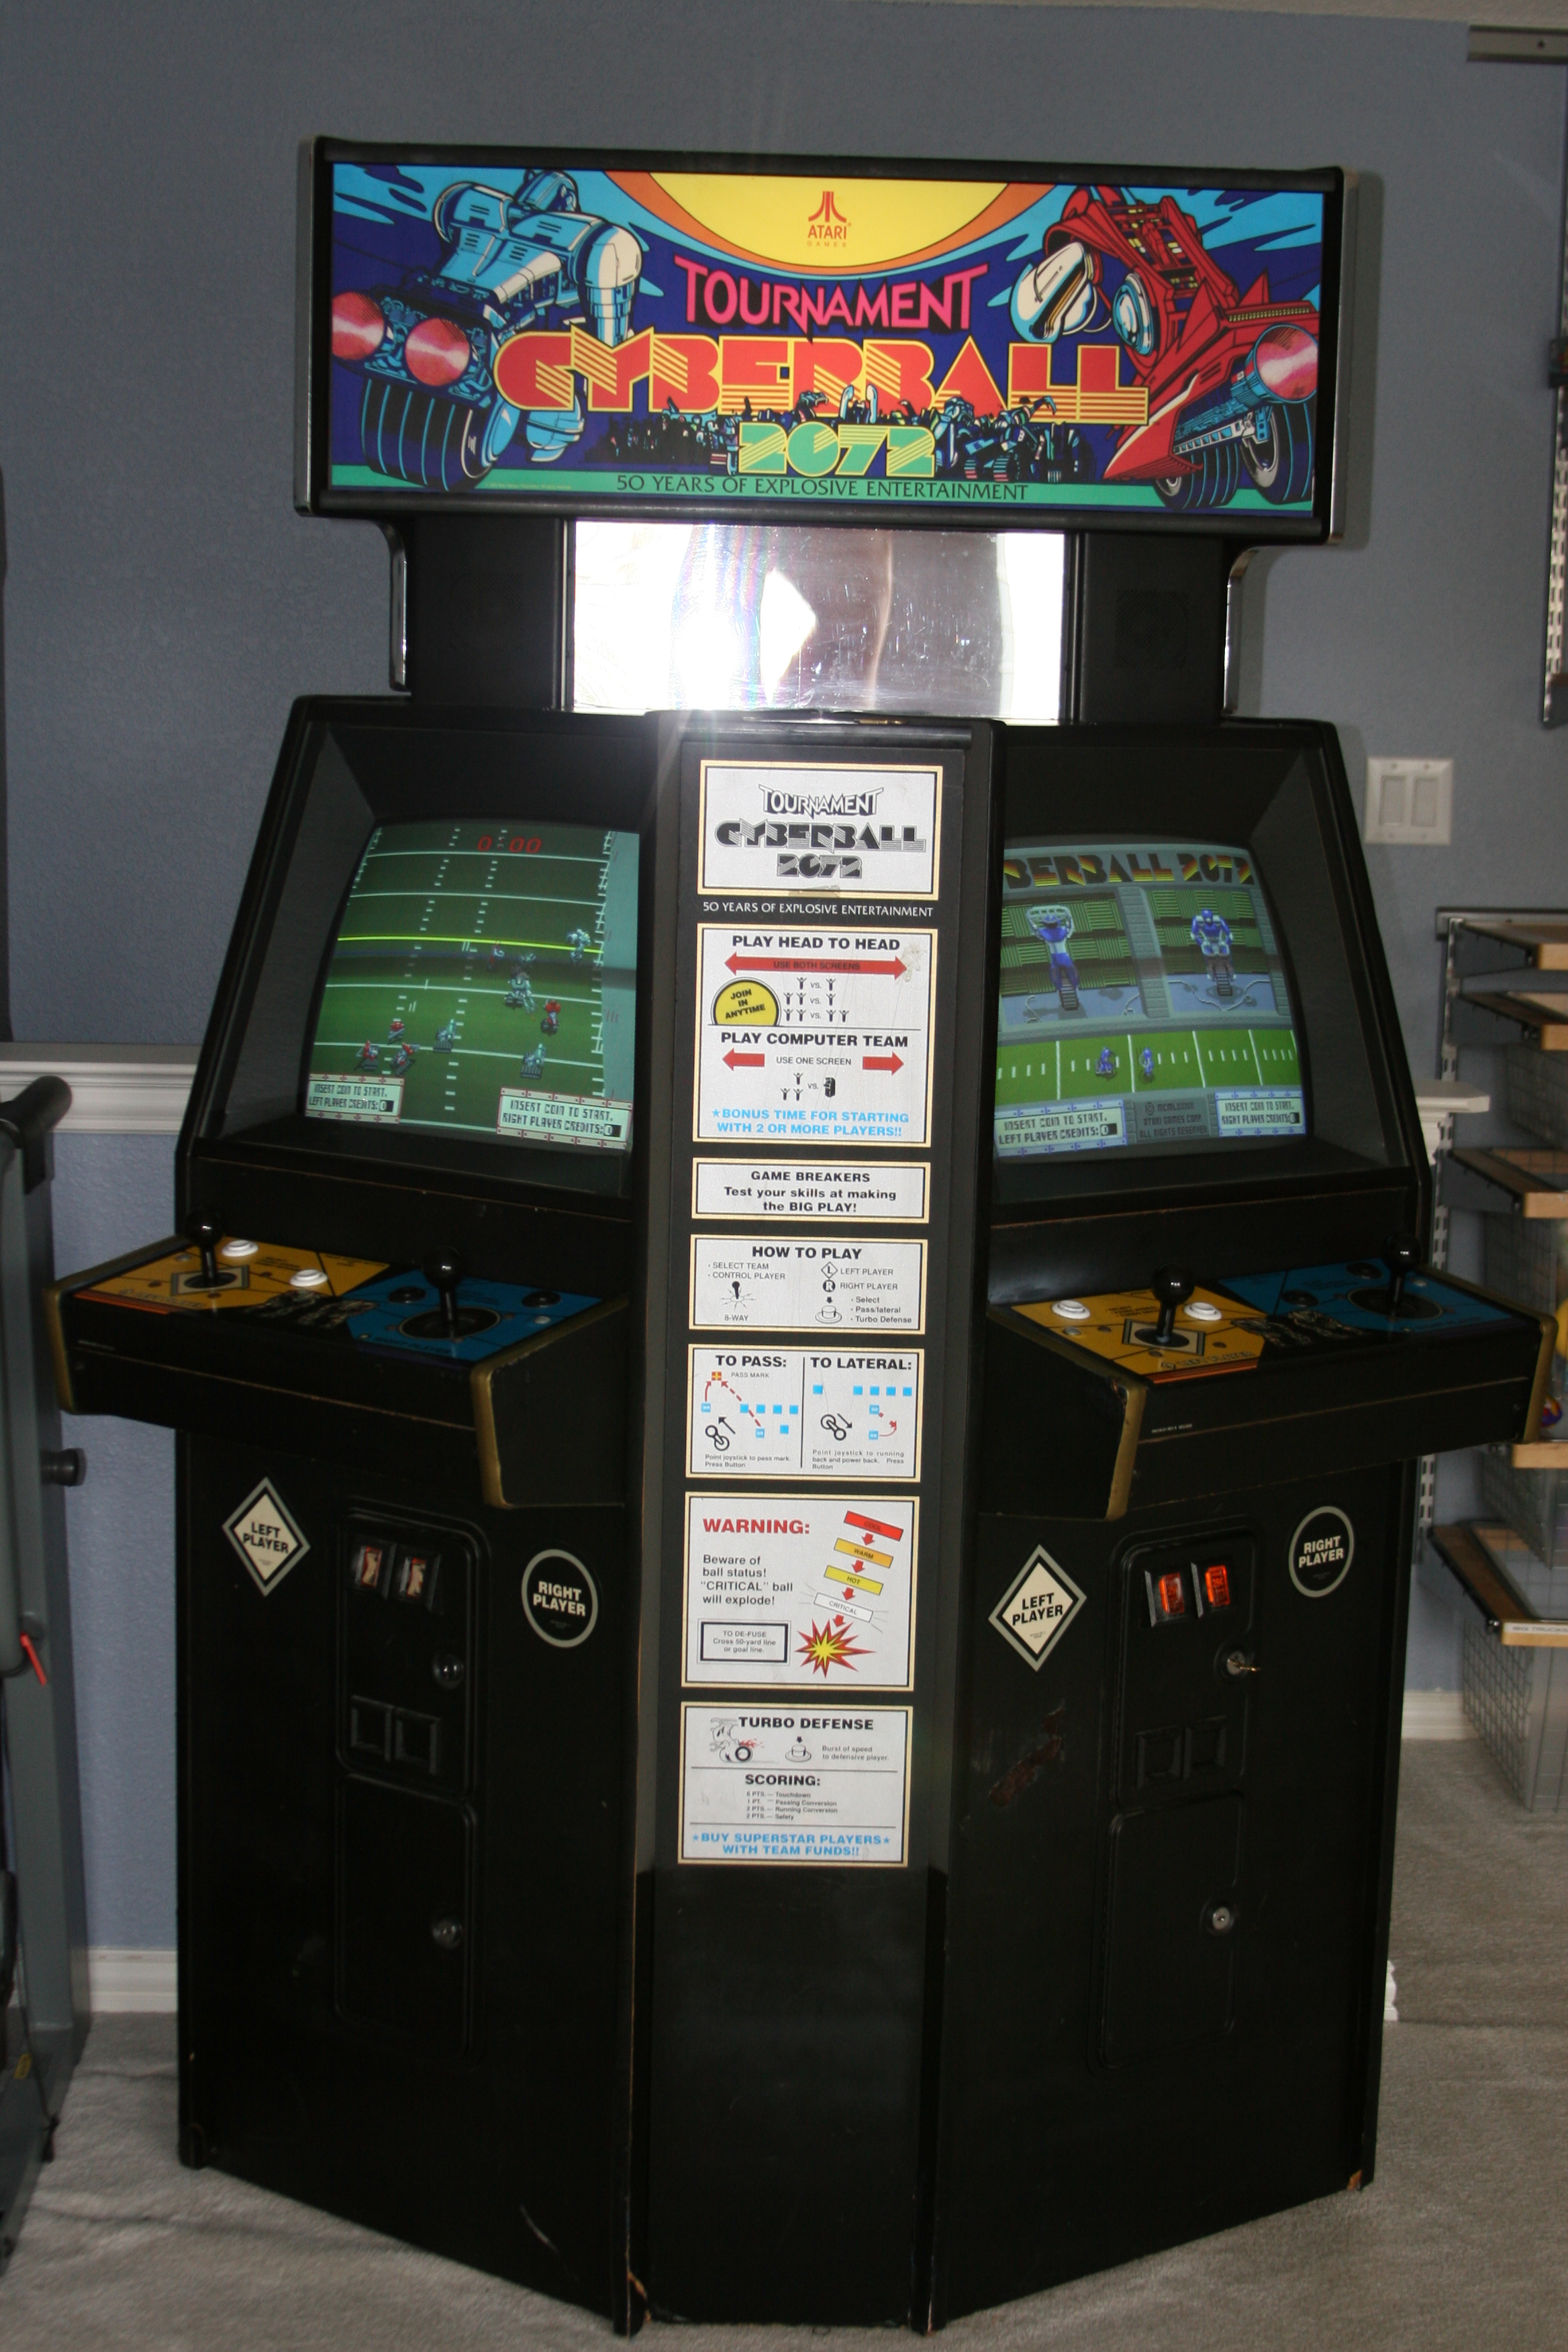 Tournament Cyberball 2072 arcade game for sale